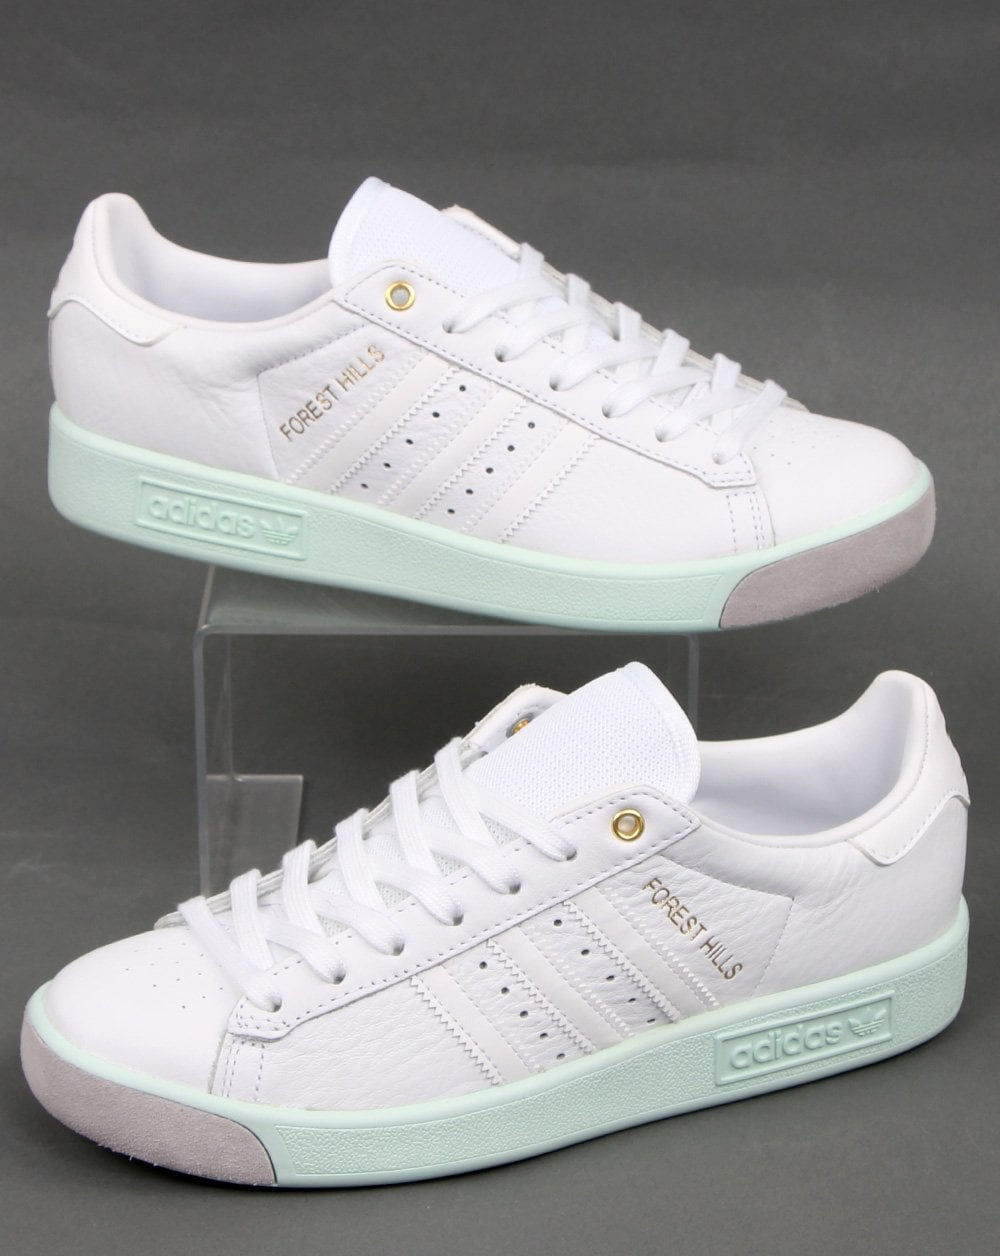 Adidas Forest Hills Trainers White/Dash